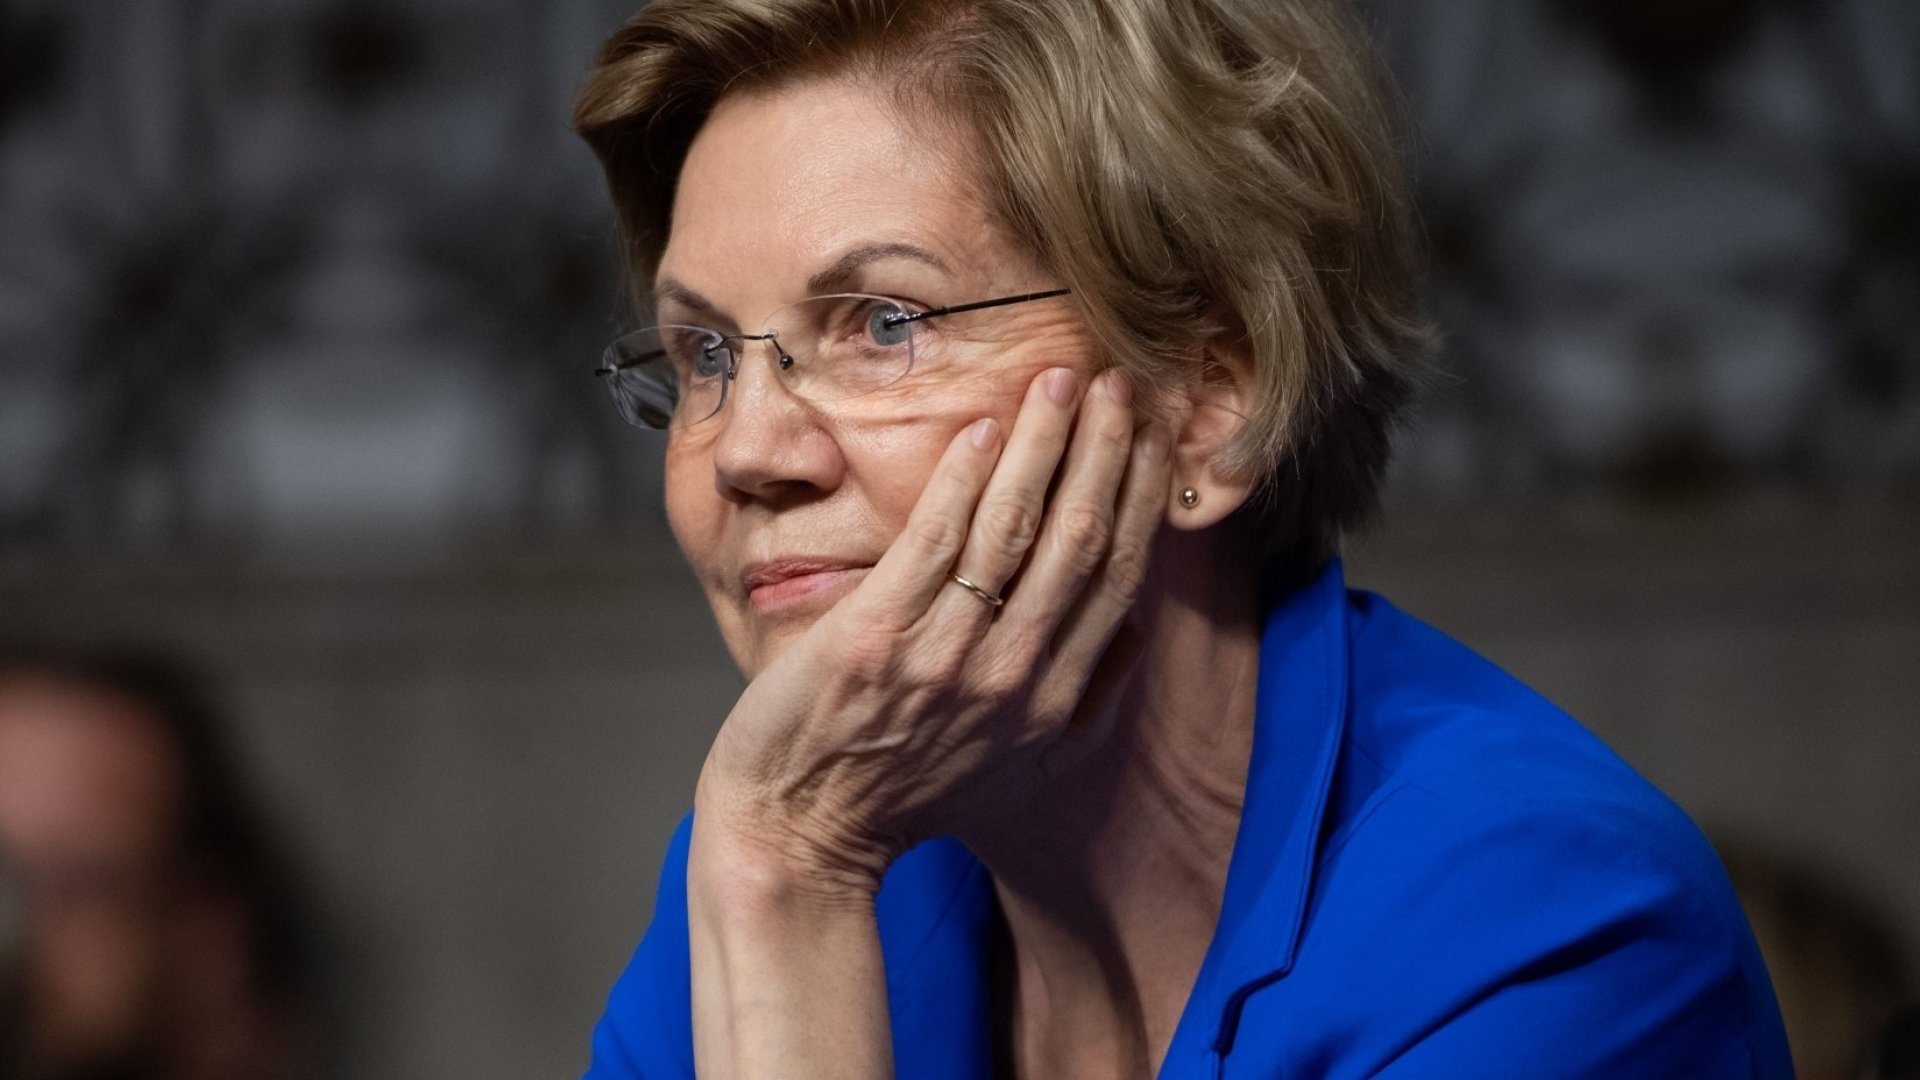 Elizabeth Warren Is Proposing New Regulations on the Private Equity Industry